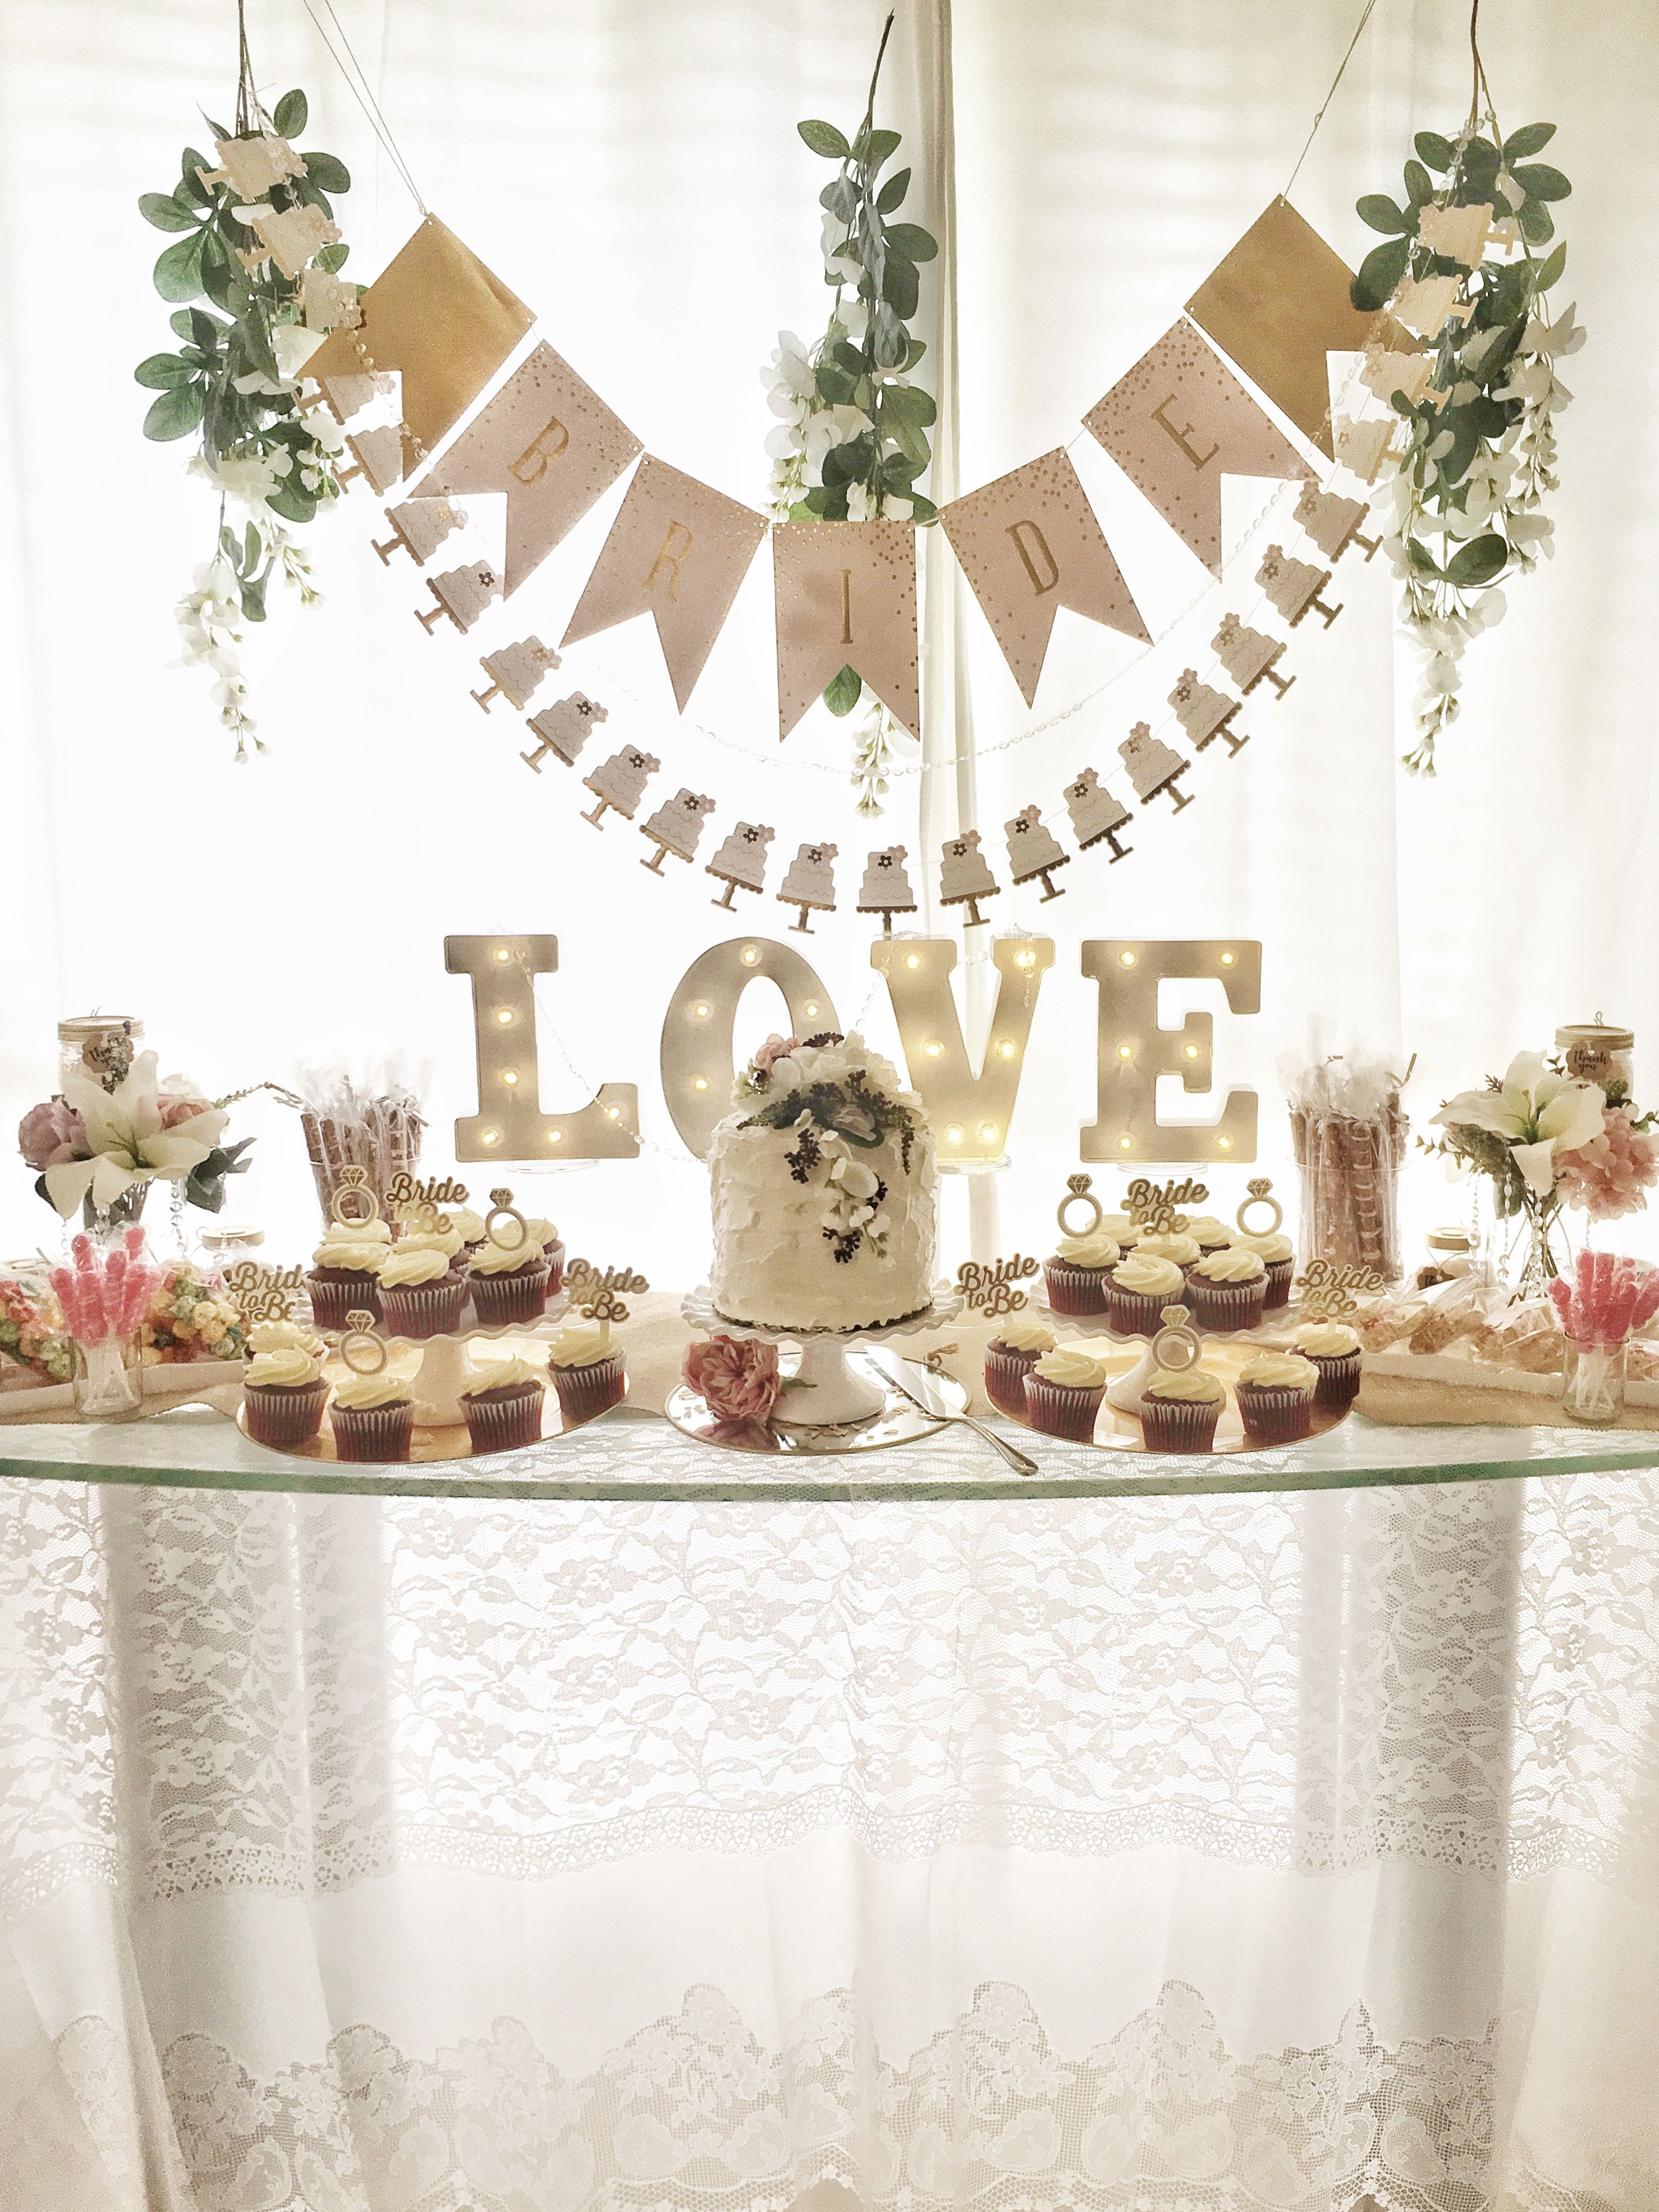 Beautiful candy bar decoration for a wedding or bridal shower